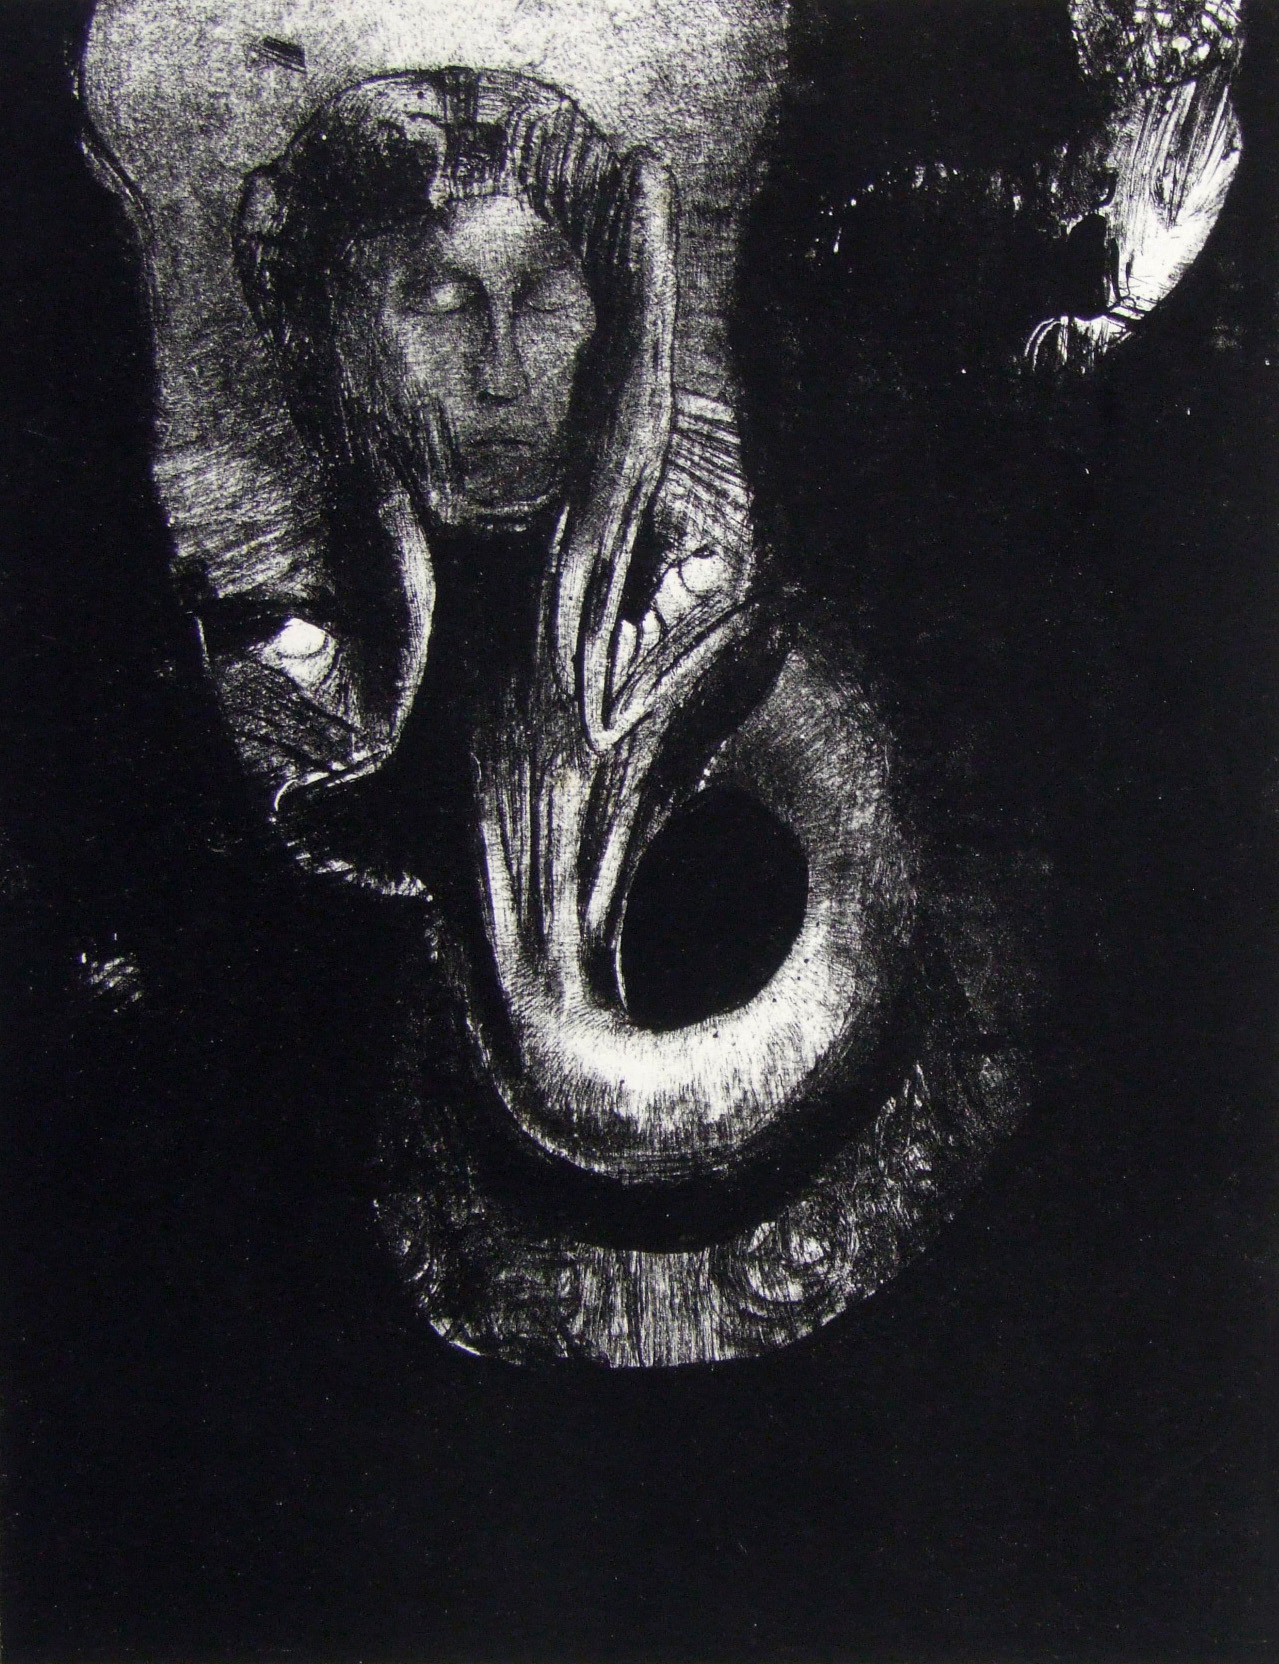 Odilon Redon, <i>Oannès: I, the First Consciousness of Chaos, Arose from the Abyss to Harden Matter, to Regulate Form</i> from <i>The Temptation of Saint Anthony</i>, 1896. Eli and Edythe Broad Art Museum, Michigan State University, purchase, funded by the Garrison Memorial.